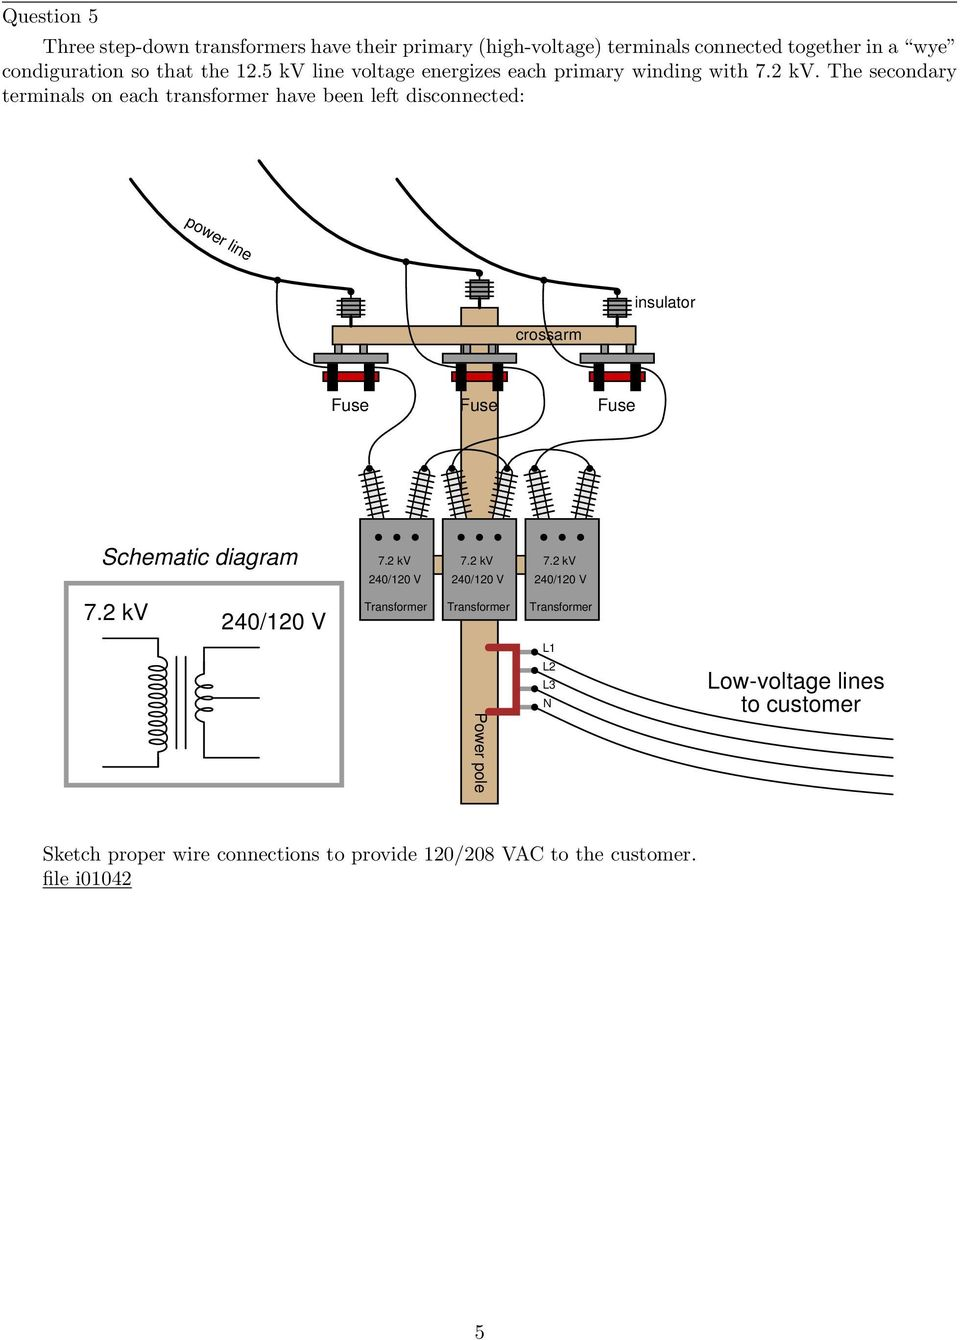 medium resolution of the secondary terminals on each transformer have been left disconnected power line crossarm insulator schematic